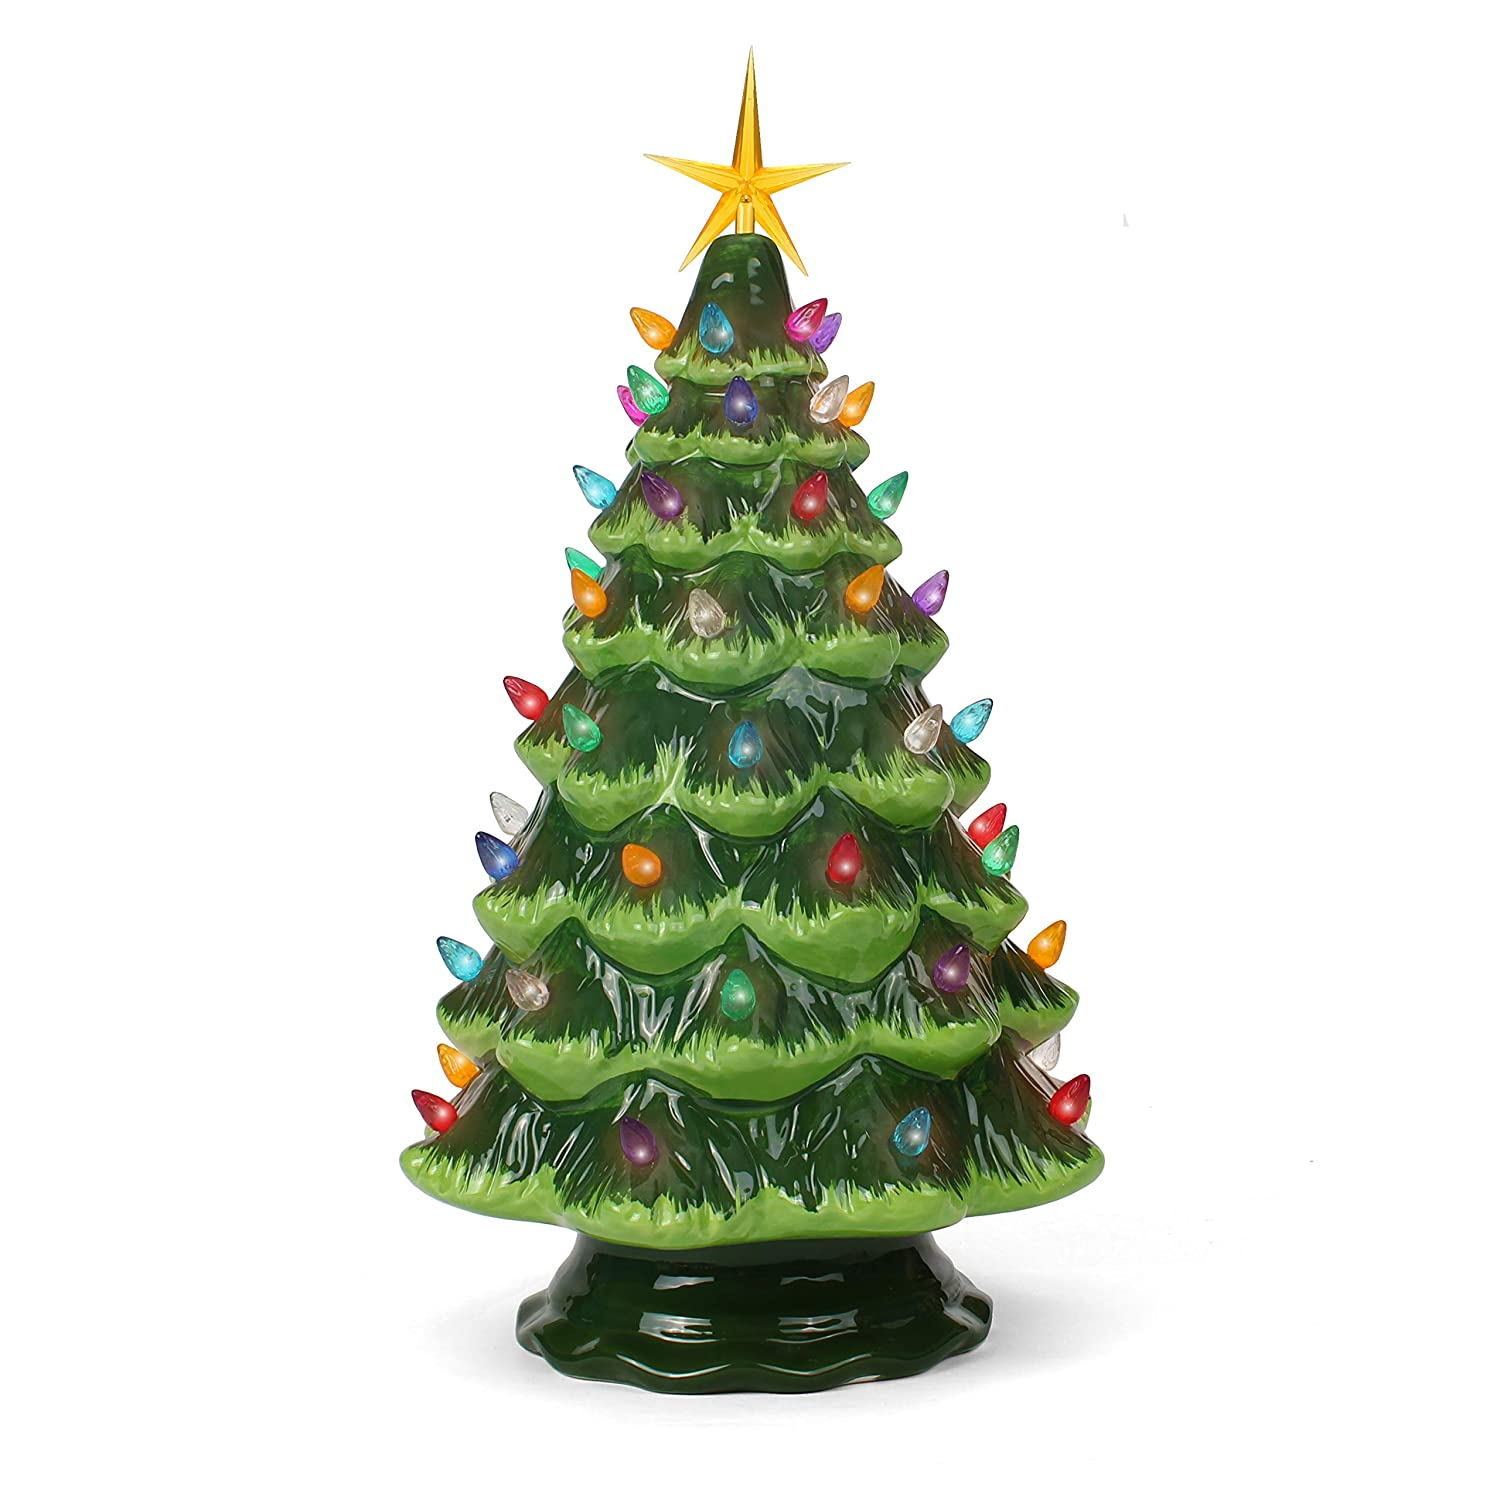 Ceramic Christmas Tree With Lights.Ceramic Christmas Tree Tabletop Christmas Tree Lights 15 5 Large Green Christmas Tree Multicolored Lights Lighted Vintage Ceramic Tree